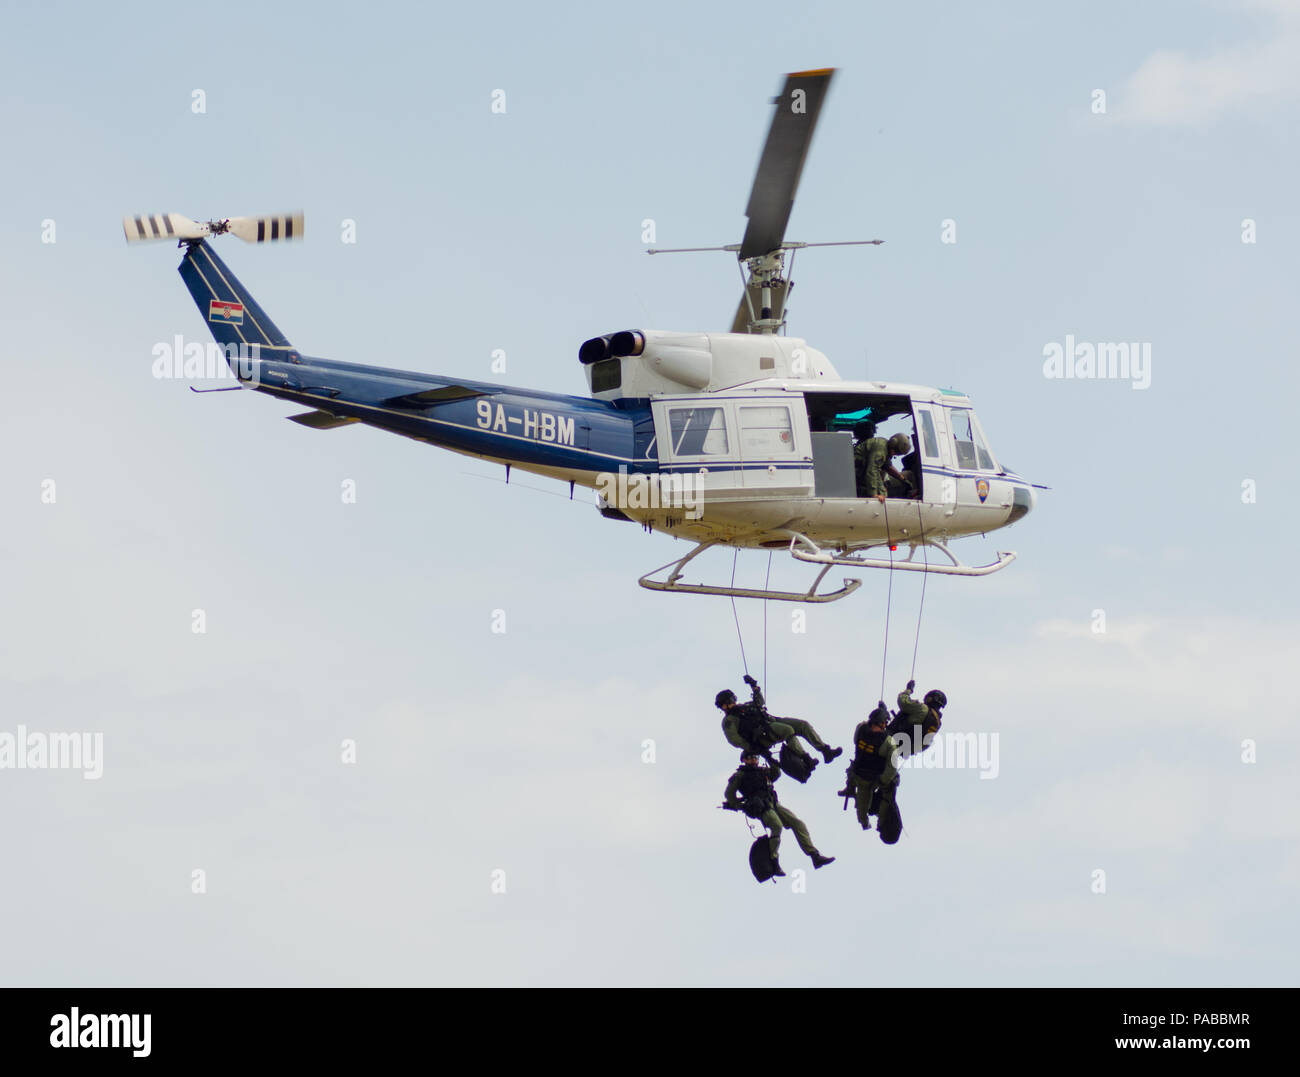 Croatian police helicopter AB 212 - Stock Image